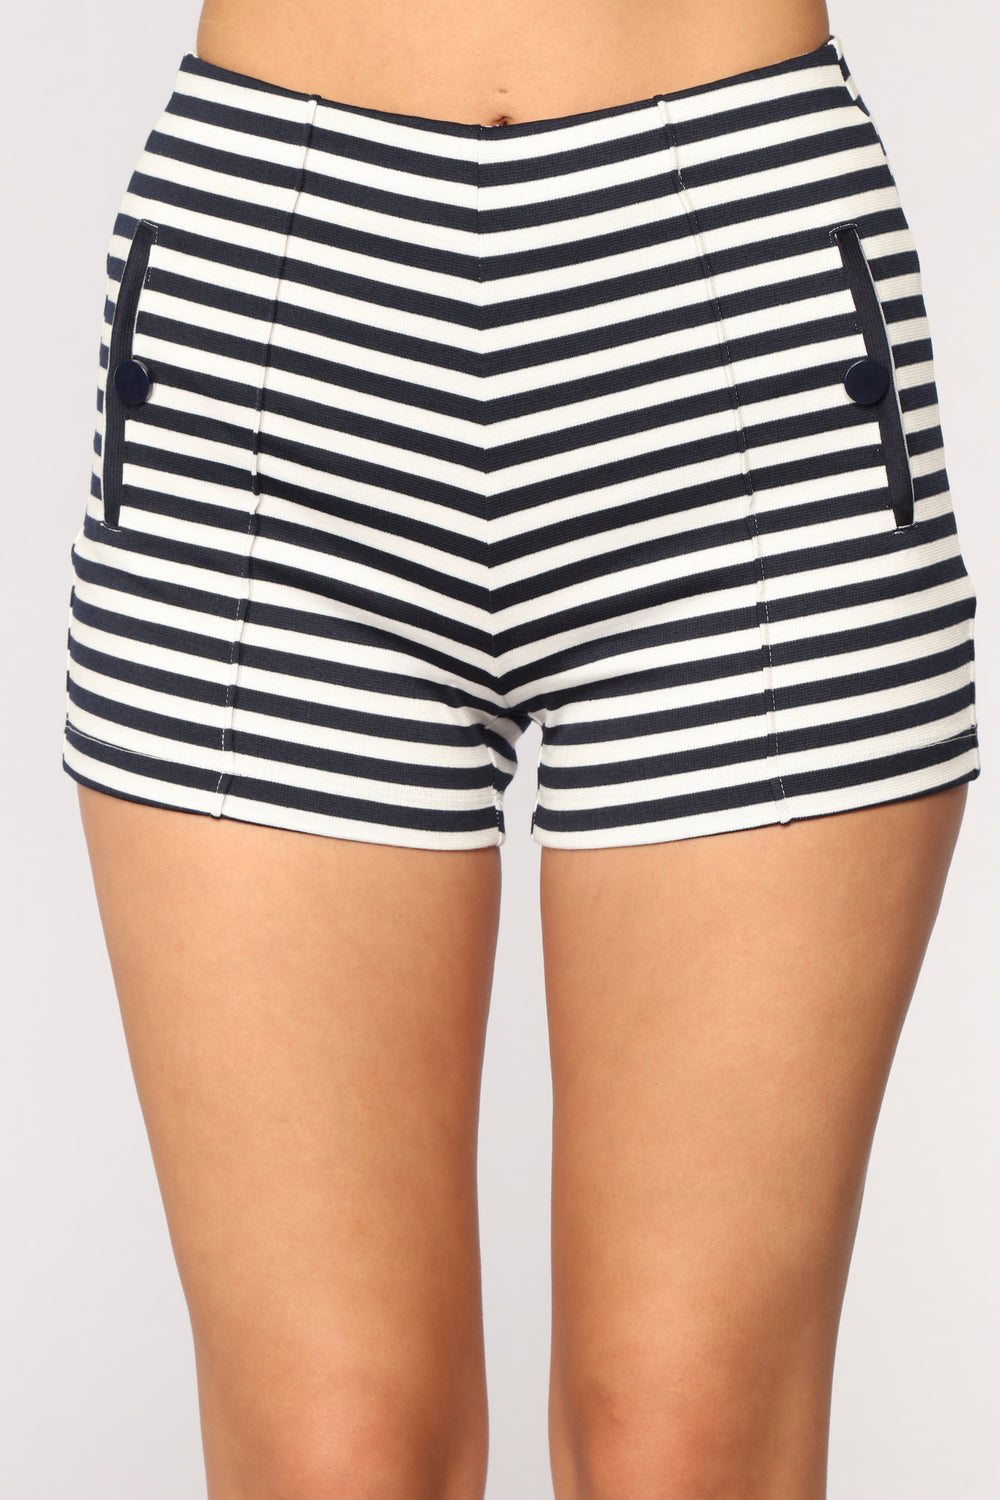 McKinley Striped Shorts - Navy/White